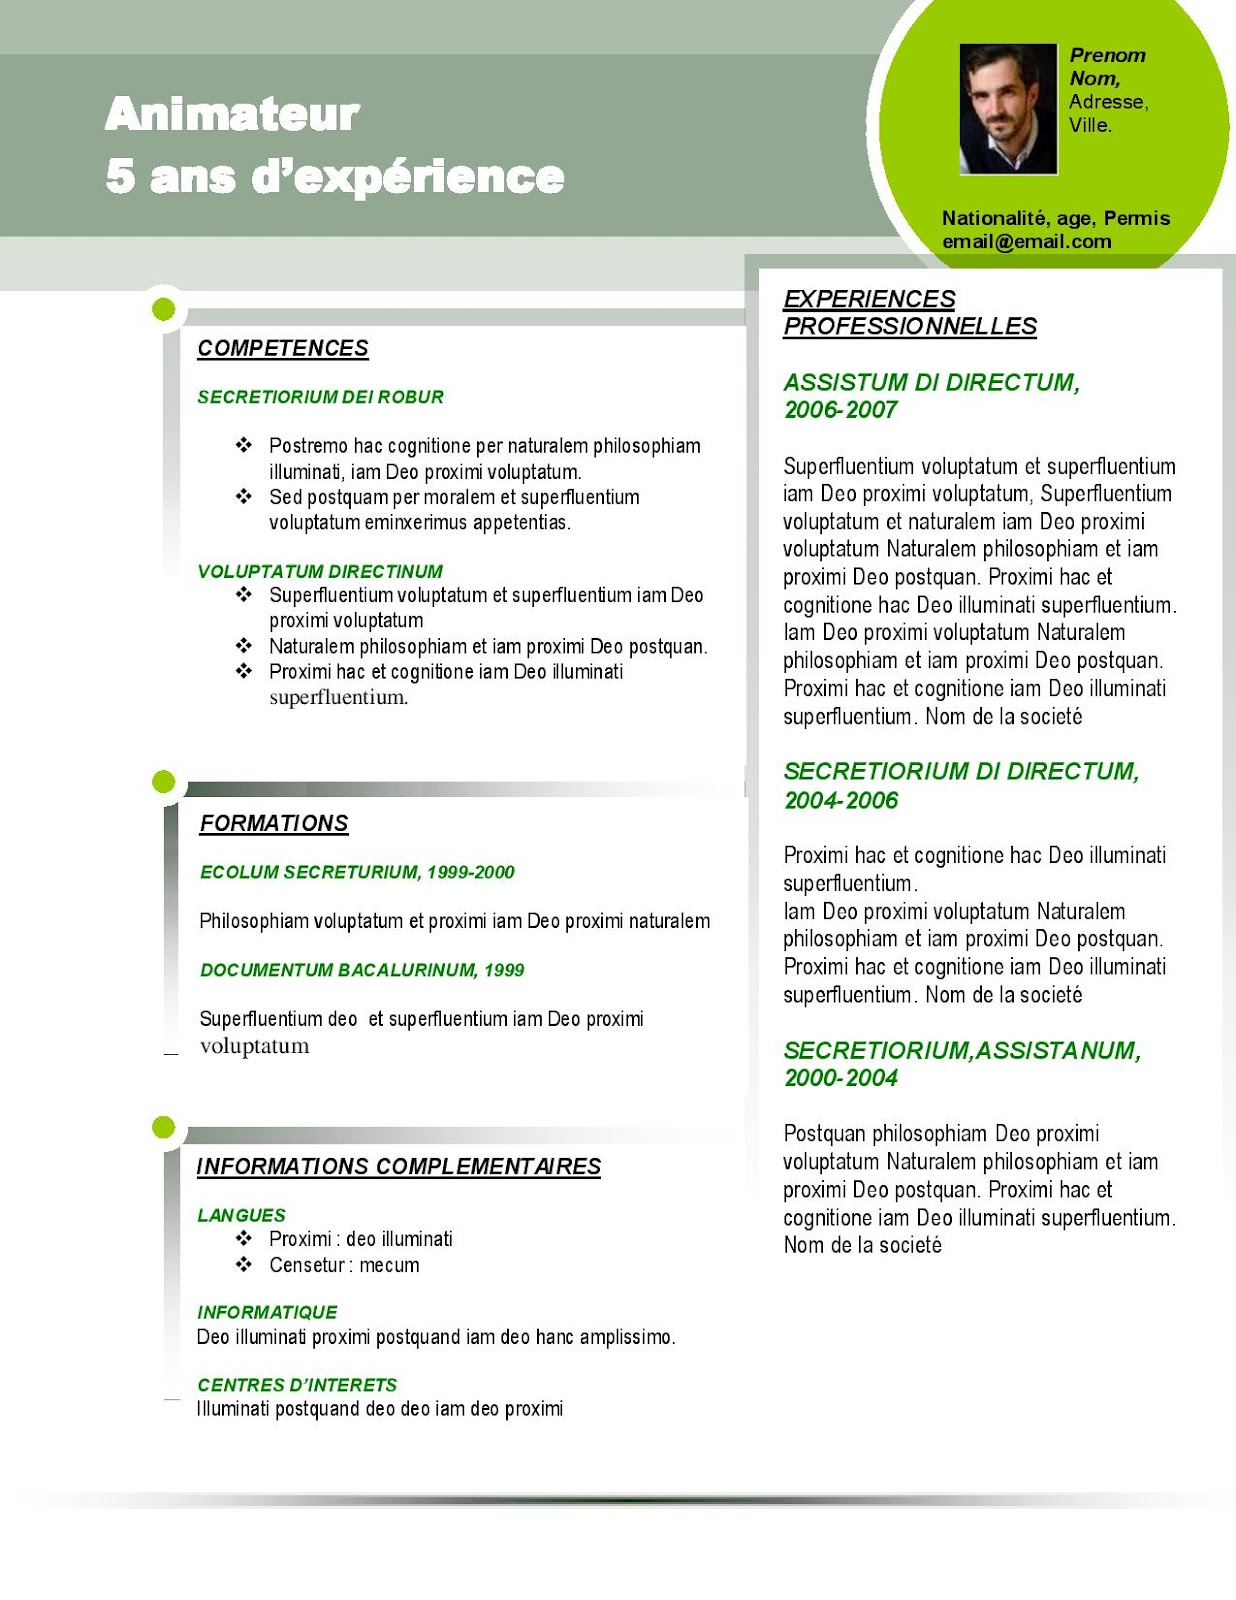 model of cv European curriculum vitae format page 1 - curriculum vitae of silaghi helga for more information go to wwwcedefopeuint/transparency/ europaeuint/comm/education.